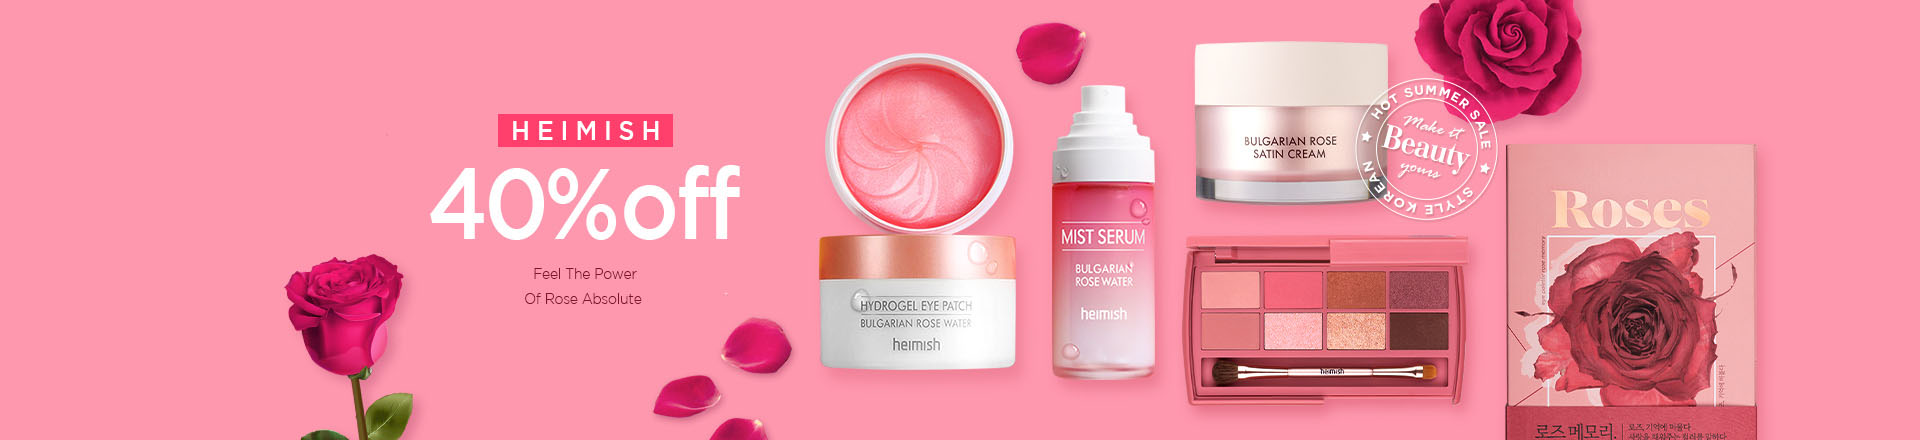 Feel the Power Of Rose Absolute, Heimish 40% OFF